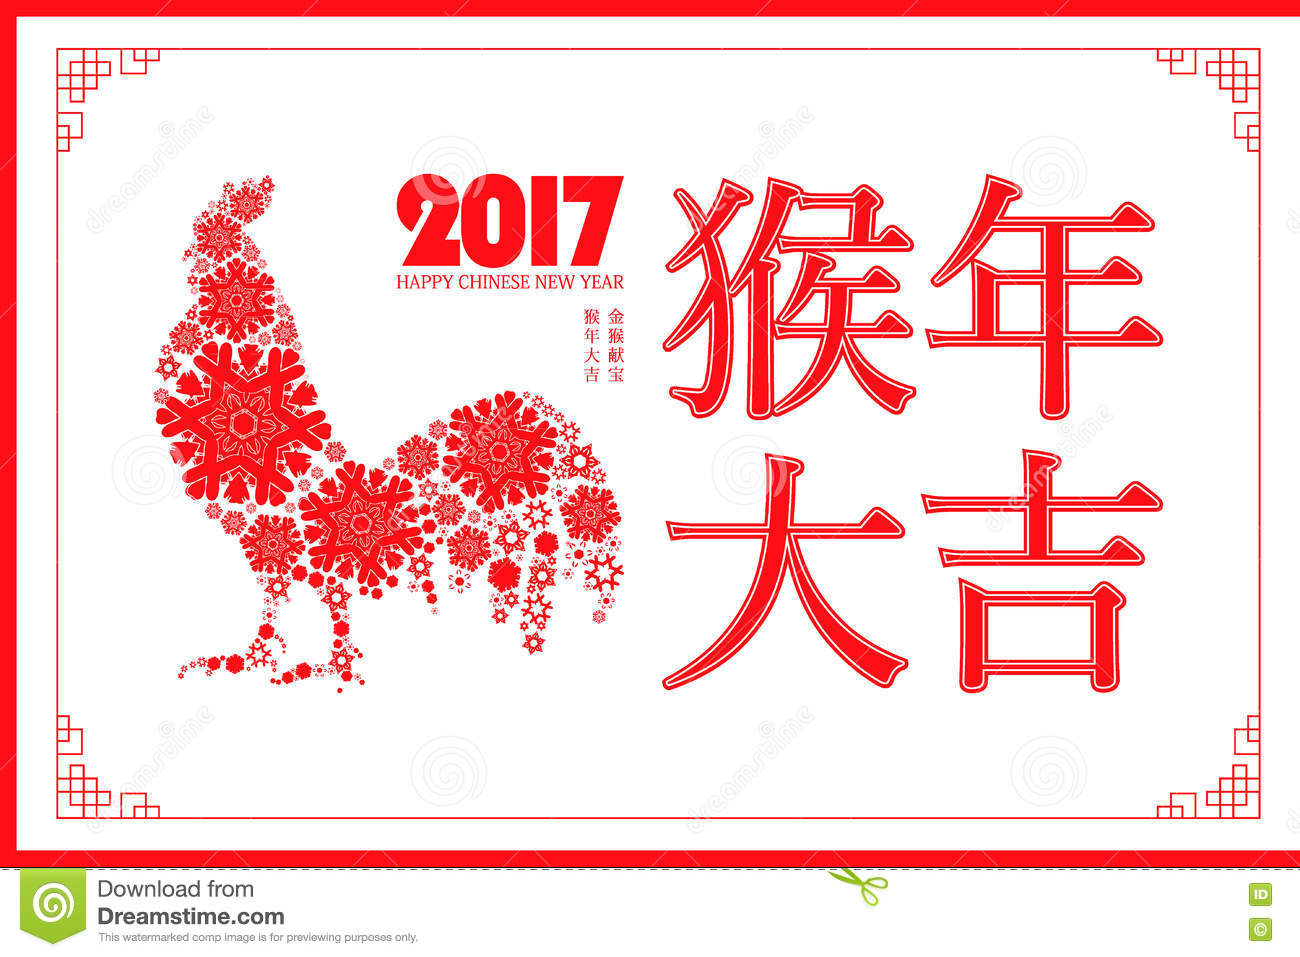 happy chinese new year 2017 card stock illustration